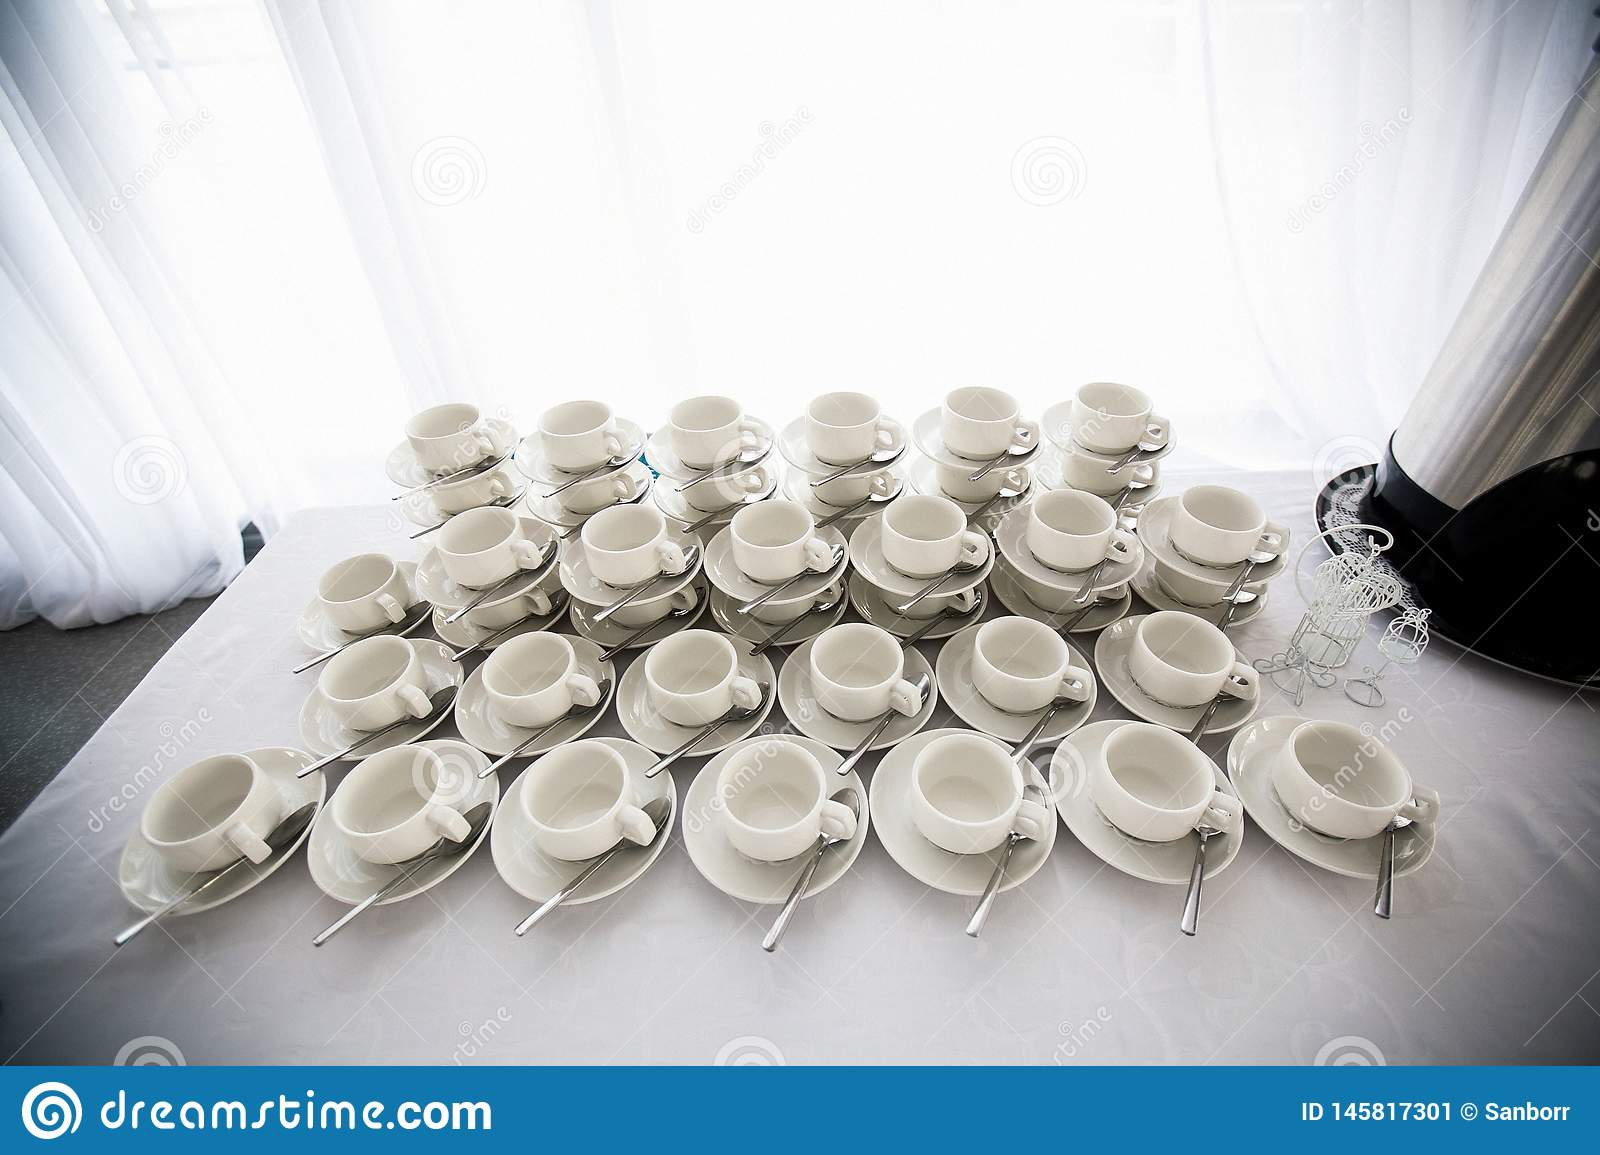 A range of traditional clean empty ceramic coffee cups on the table in the restaurant. Lots of white cups on saucers for serving